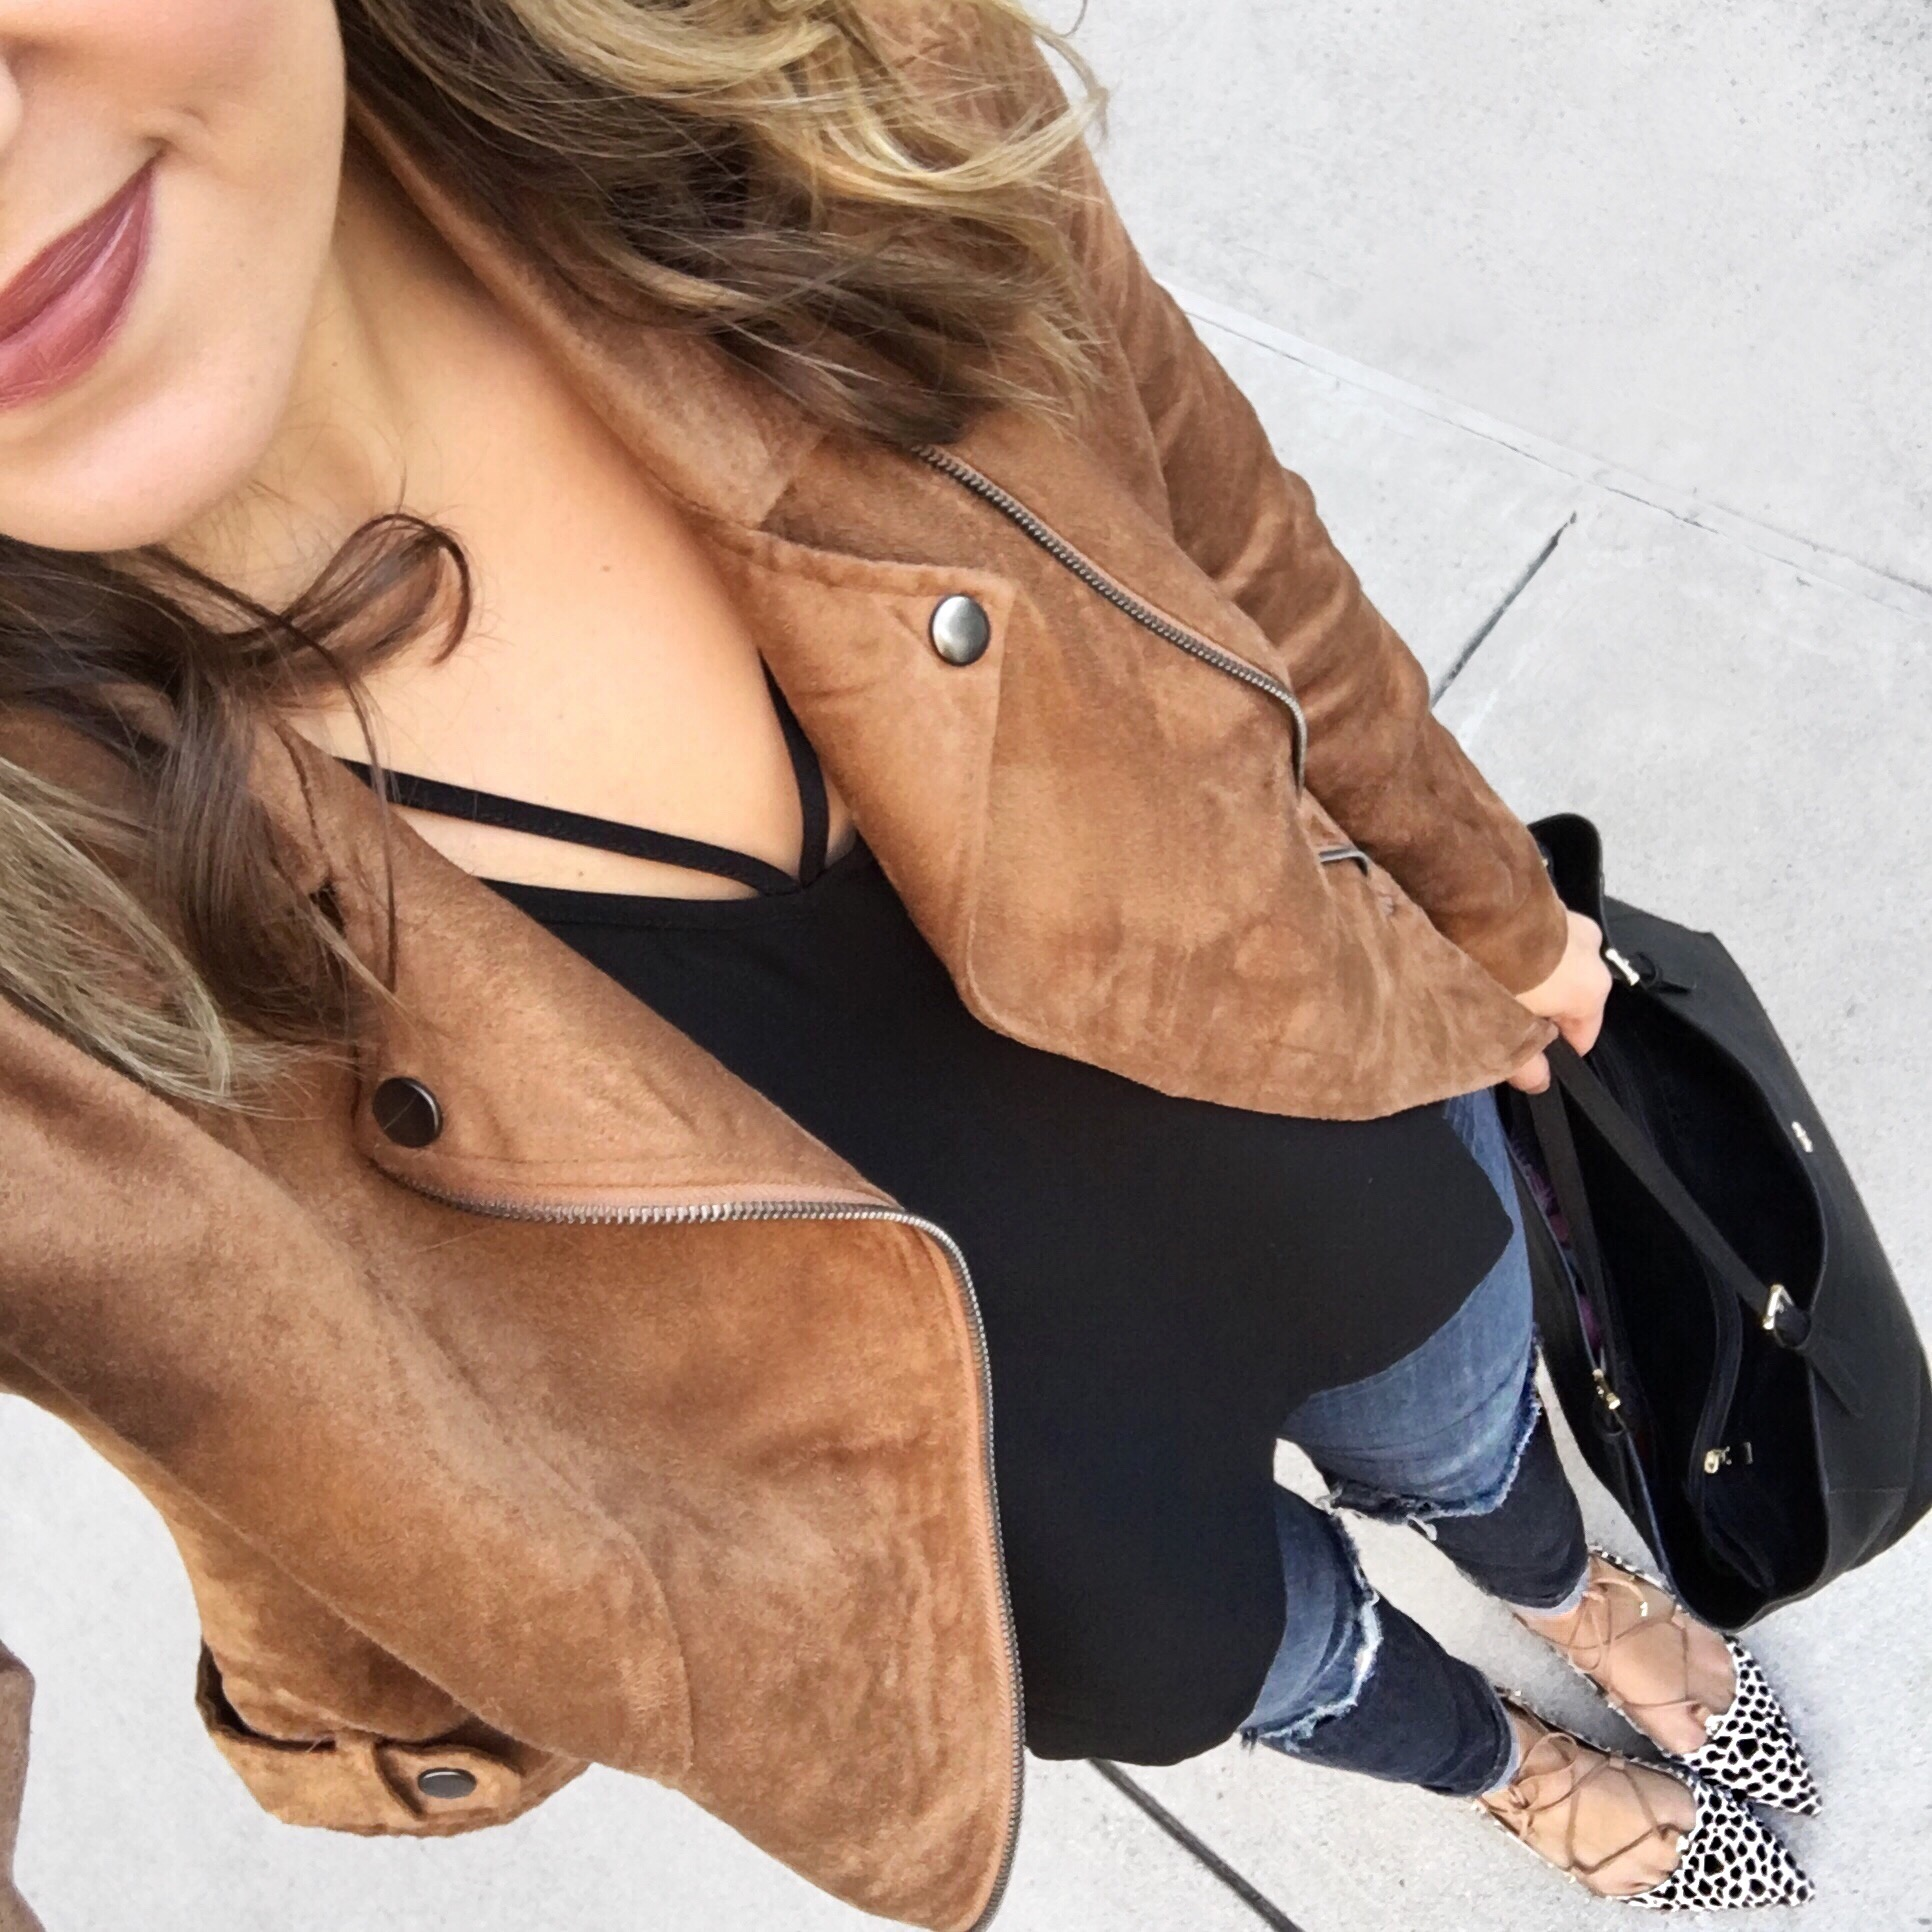 suede jacket - with black strappy camisole | instagram.com/laurenmdix